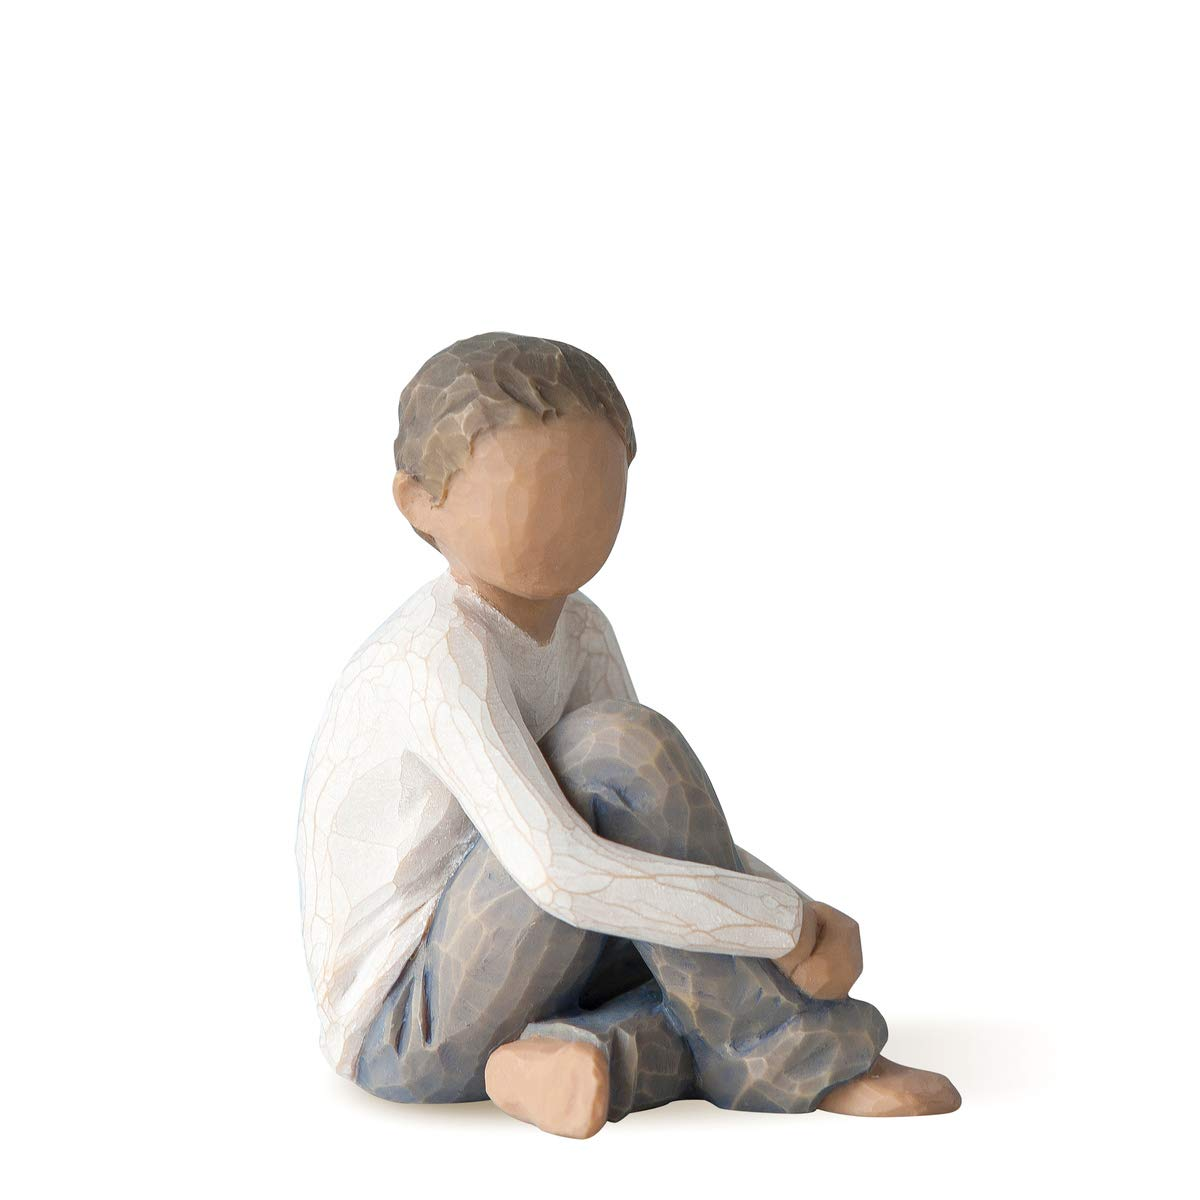 Willow Tree Caring Child (Darker Skin Tone & Hair Color), Sculpted Hand-Painted Figure